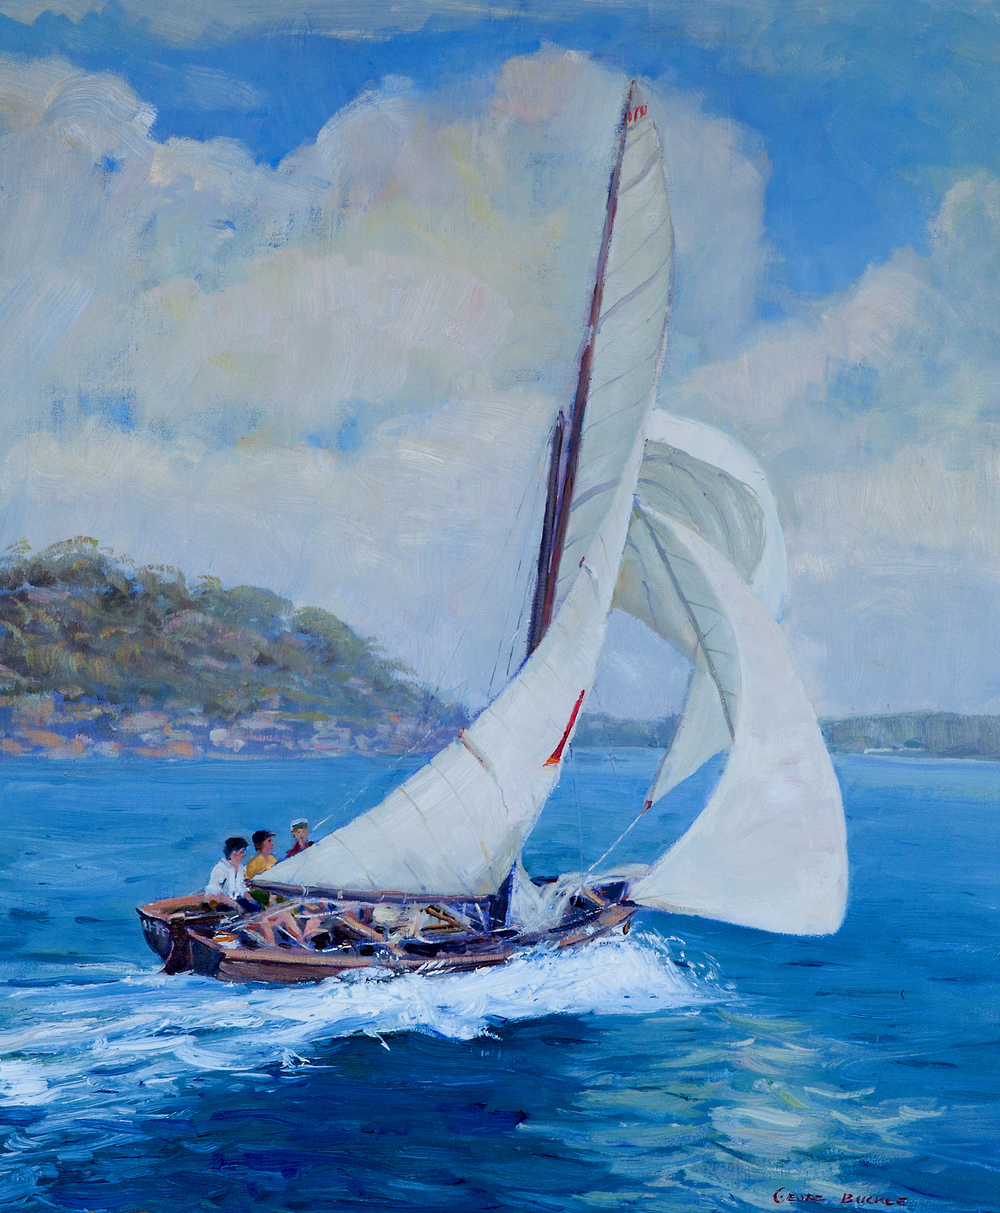 16ft Skiff Sailing Sydney Harbour